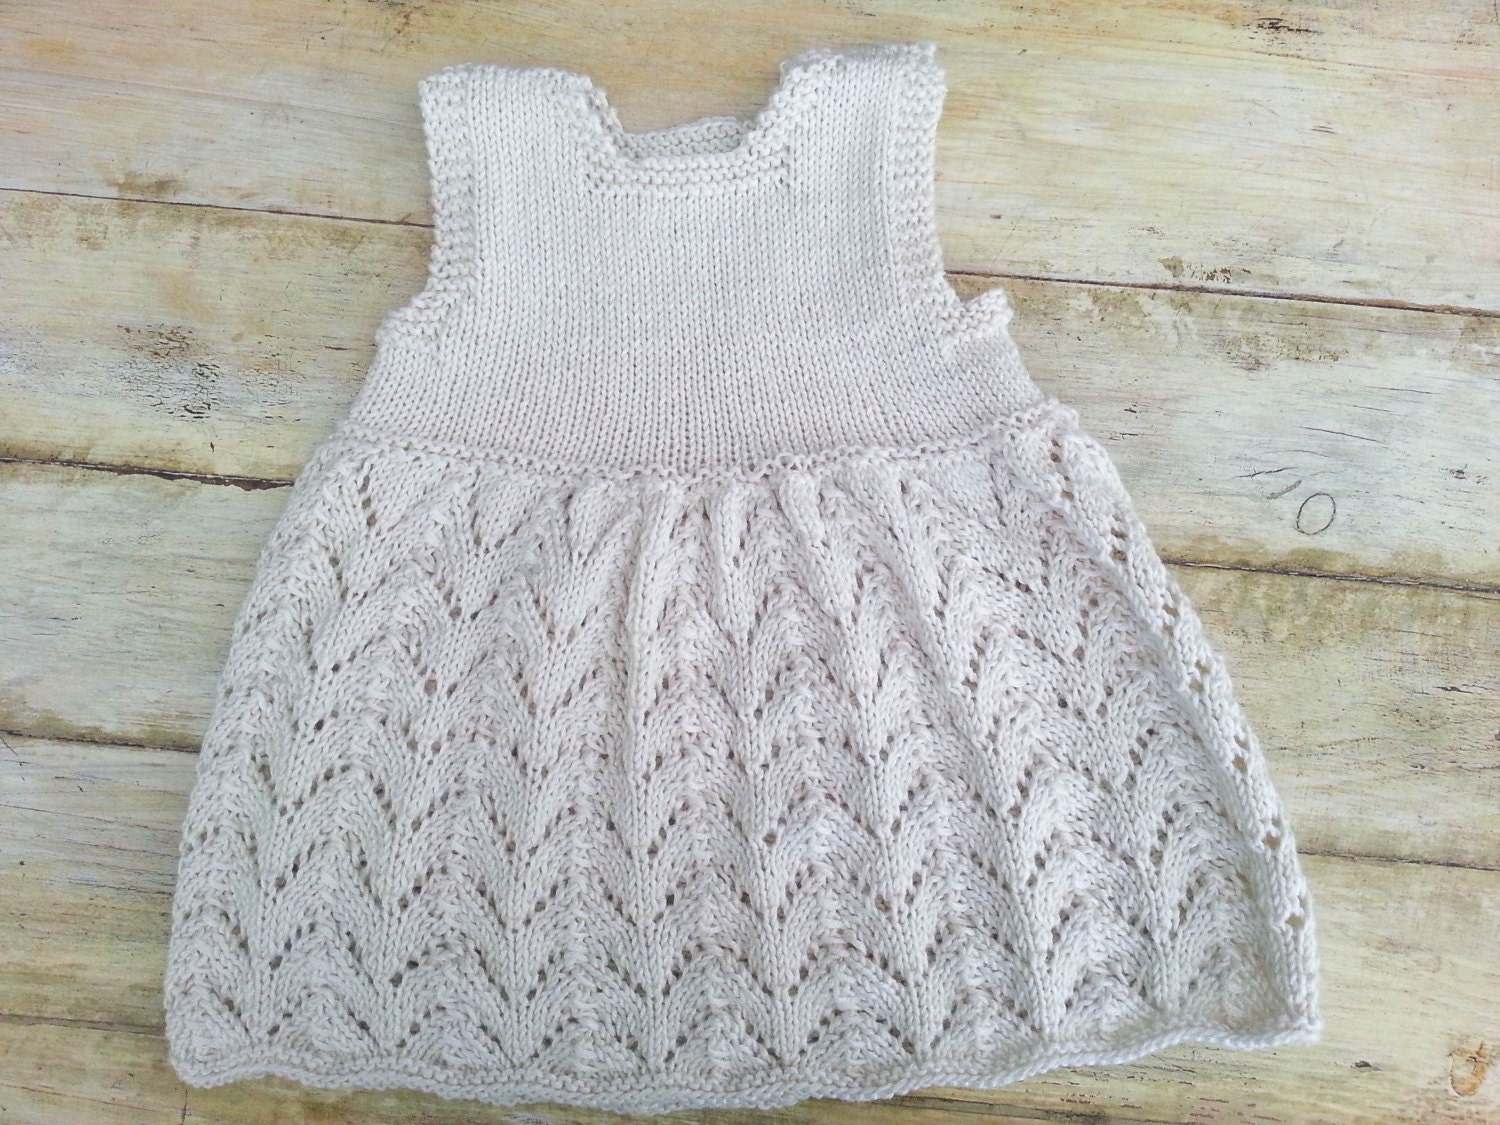 Knitting Patterns For Baby Dresses : KNITTING PATTERN Baby Lace Dress Modern Baby Lace Dress